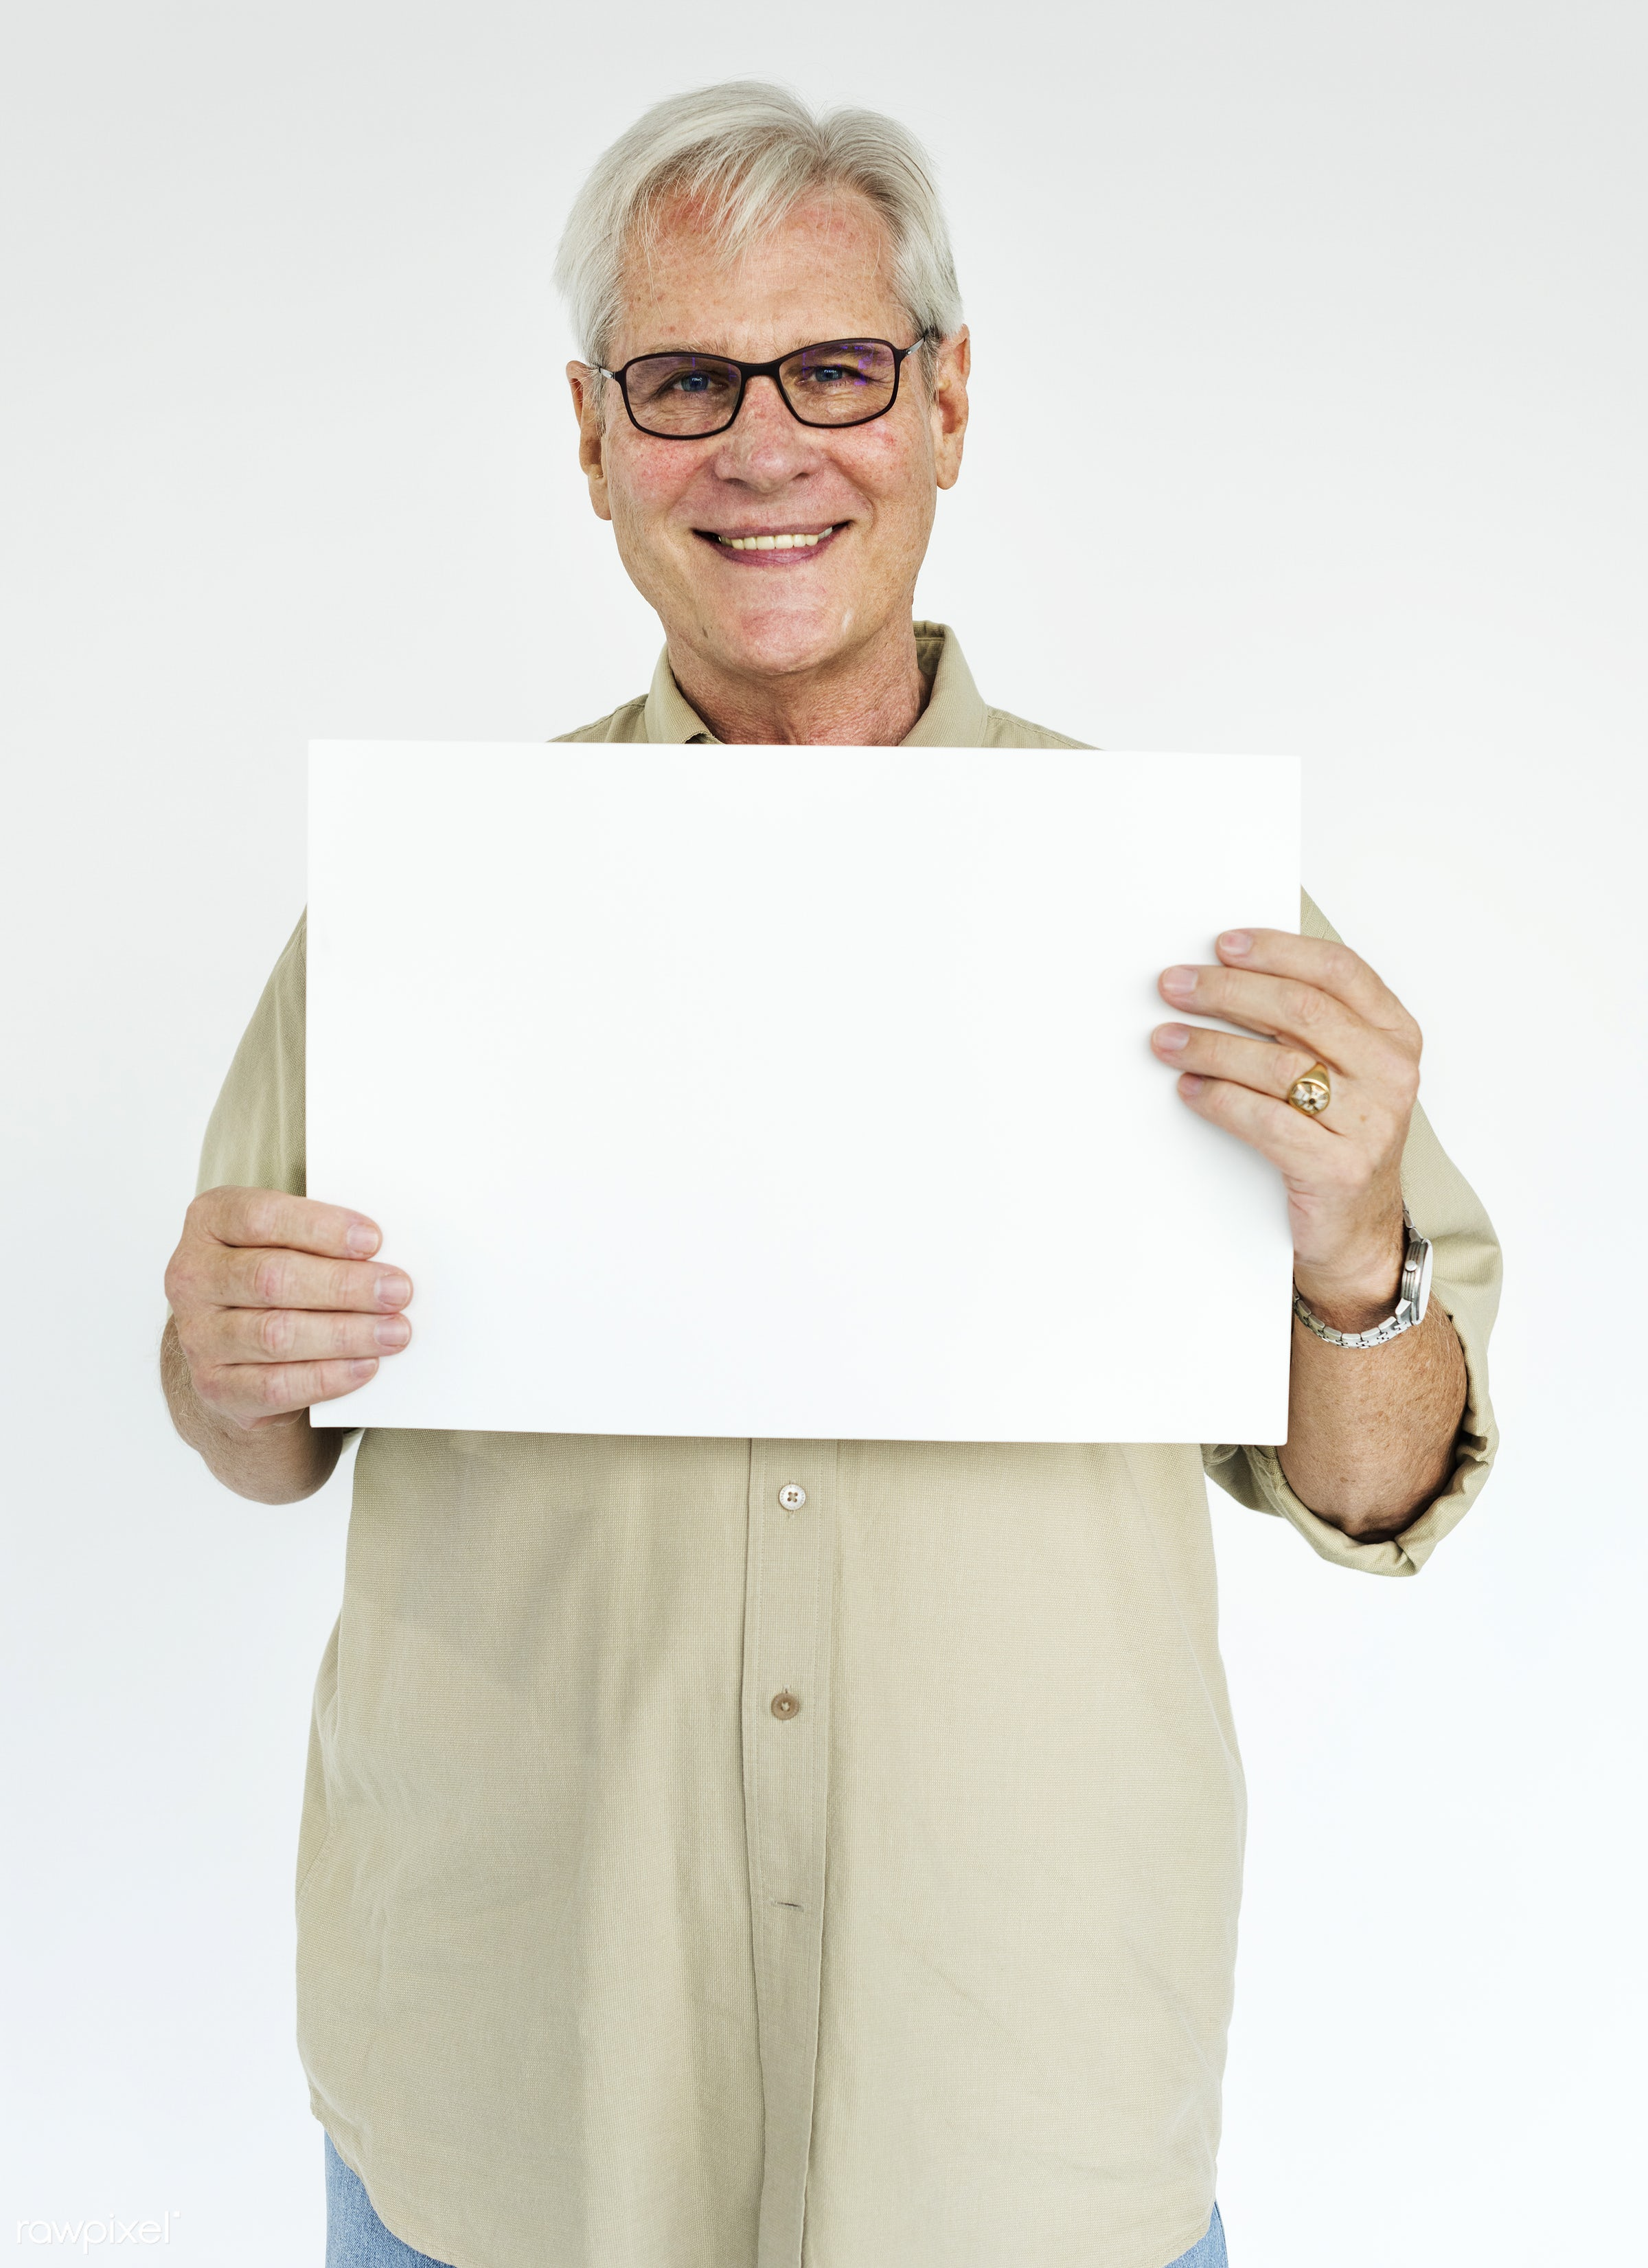 studio, person, holding, show, people, displaying, caucasian, placard, empty, smile, positive, cheerful, smiling, copy,...